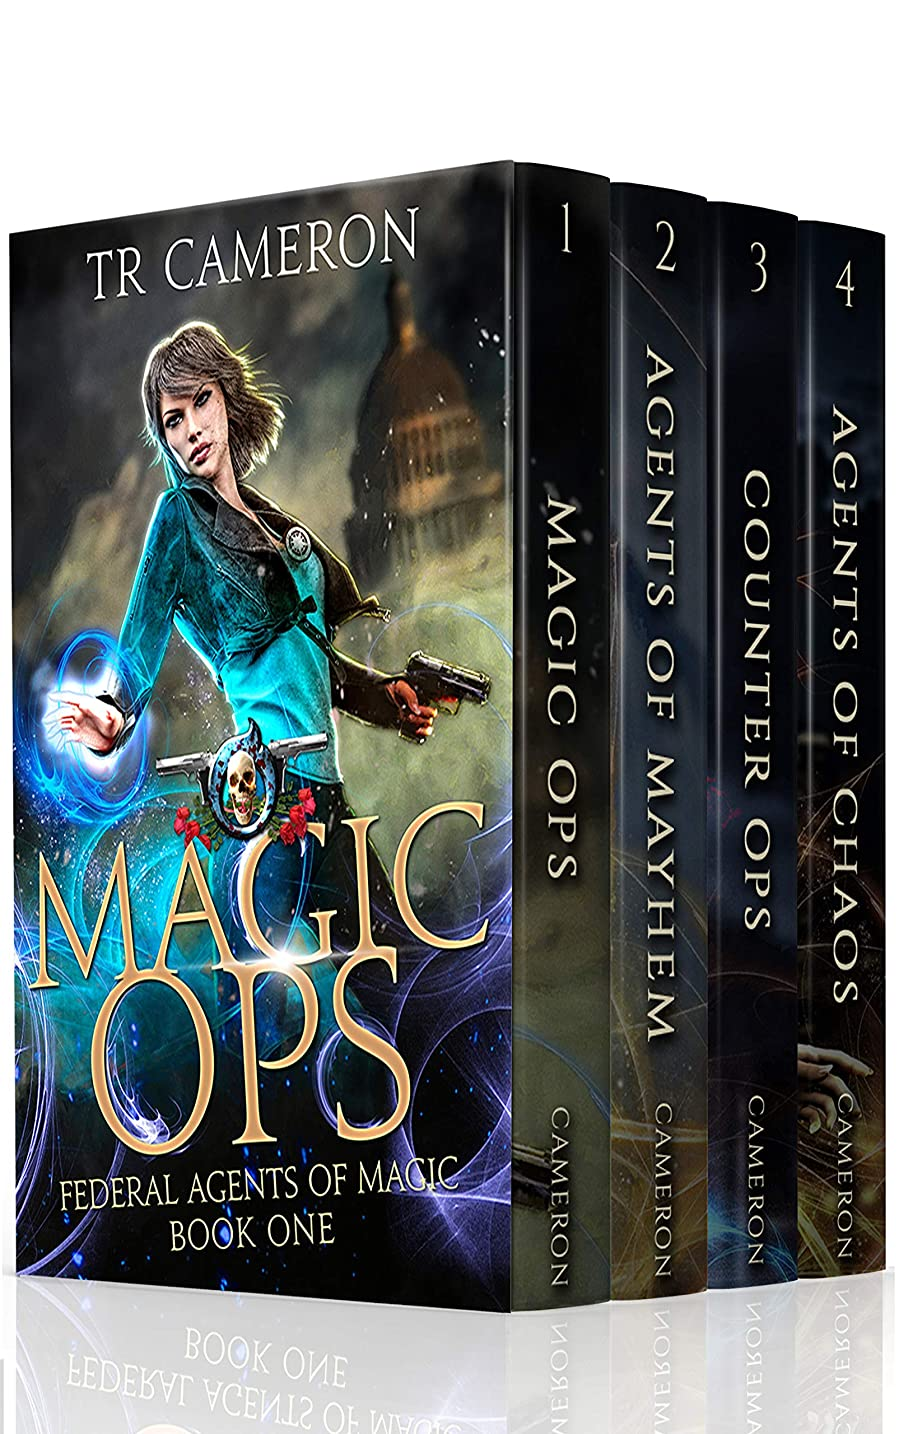 中世の道徳有名Federal Agents of Magic Boxed Set 1 - Urban Fantasy Action Adventure: Magic Ops, Agents of Mayhem, Counter Ops, Agents of Chaos (English Edition)